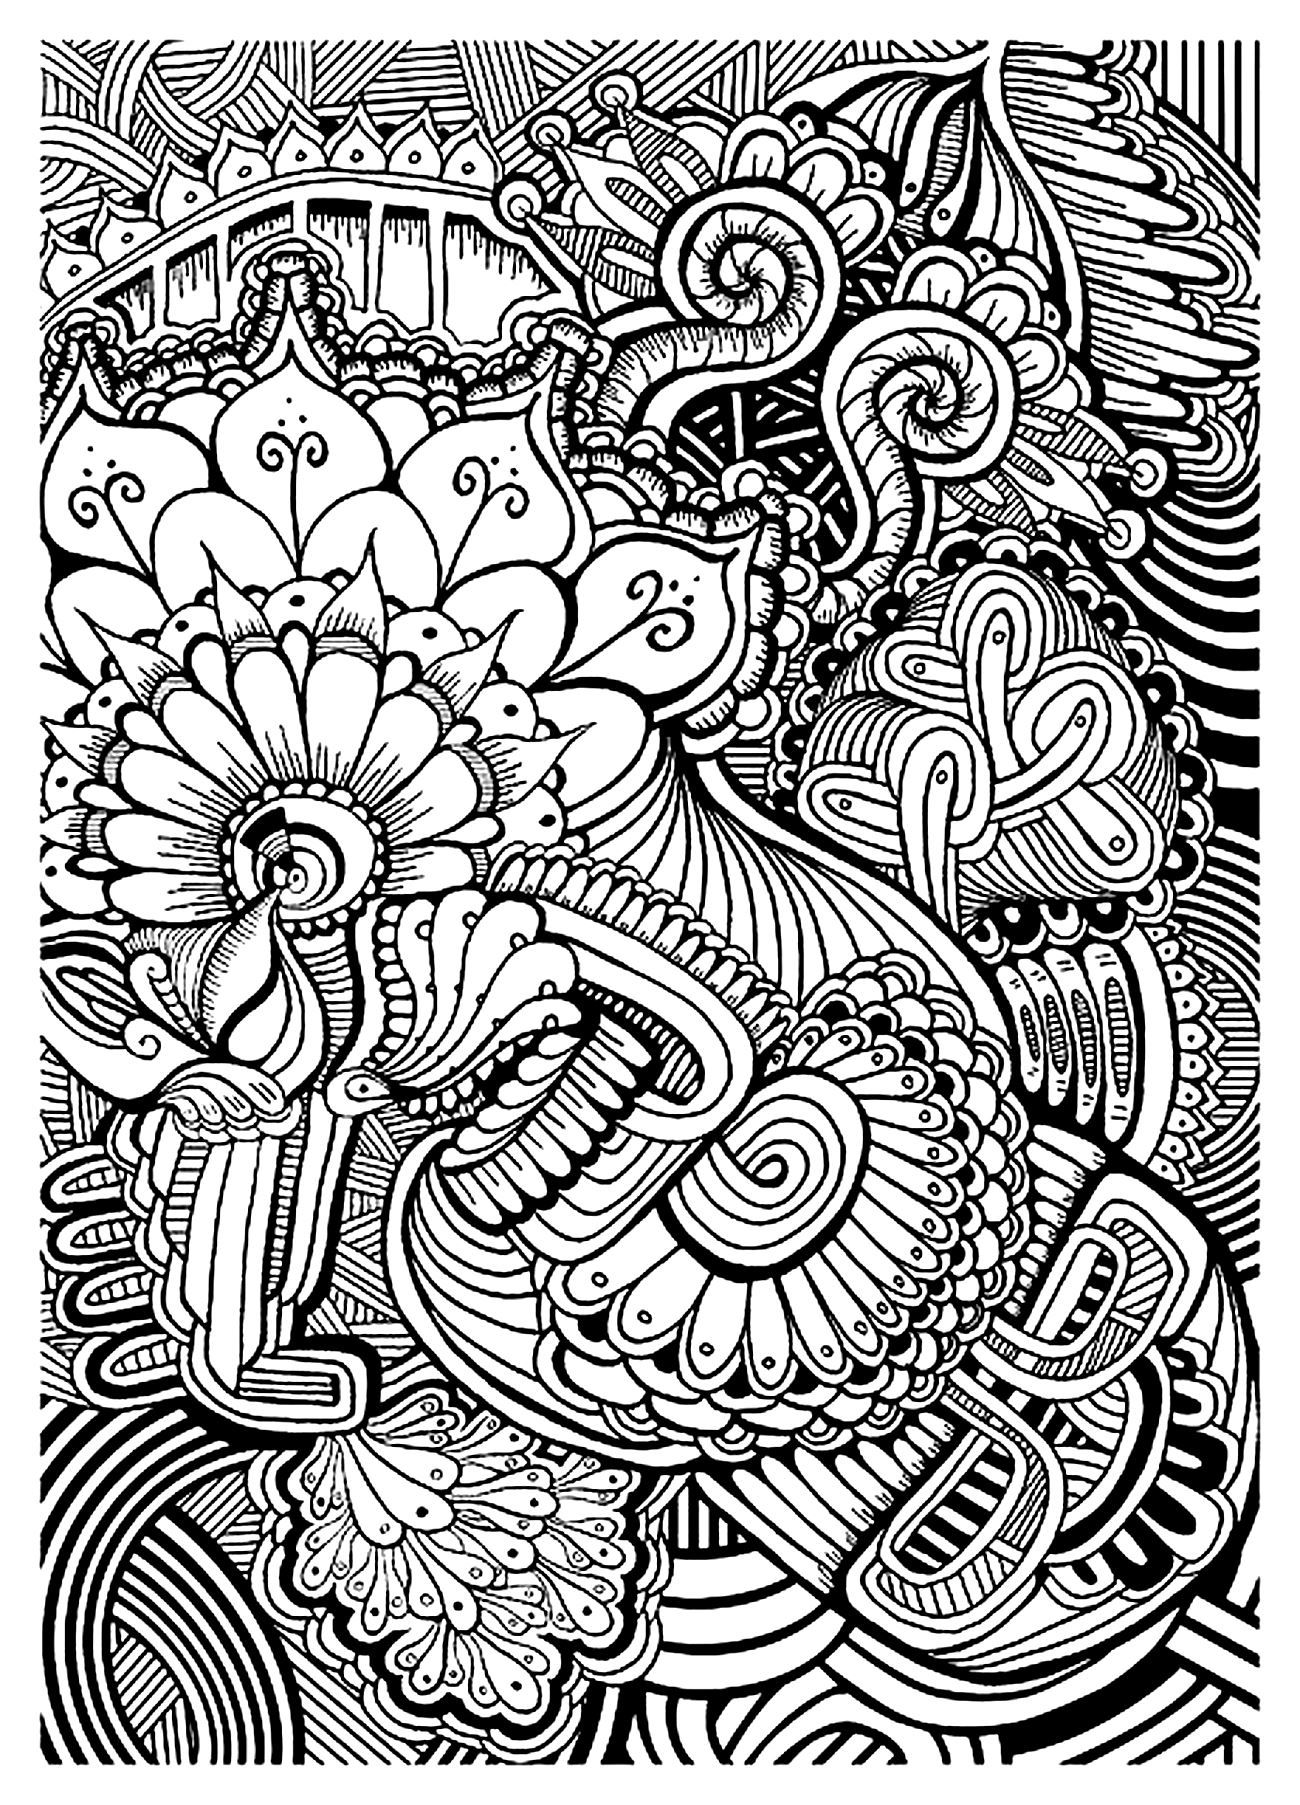 free printable coloring pages for adults zen : Free Printable Adult Colouring Page Source Coloring Pages Adults Com